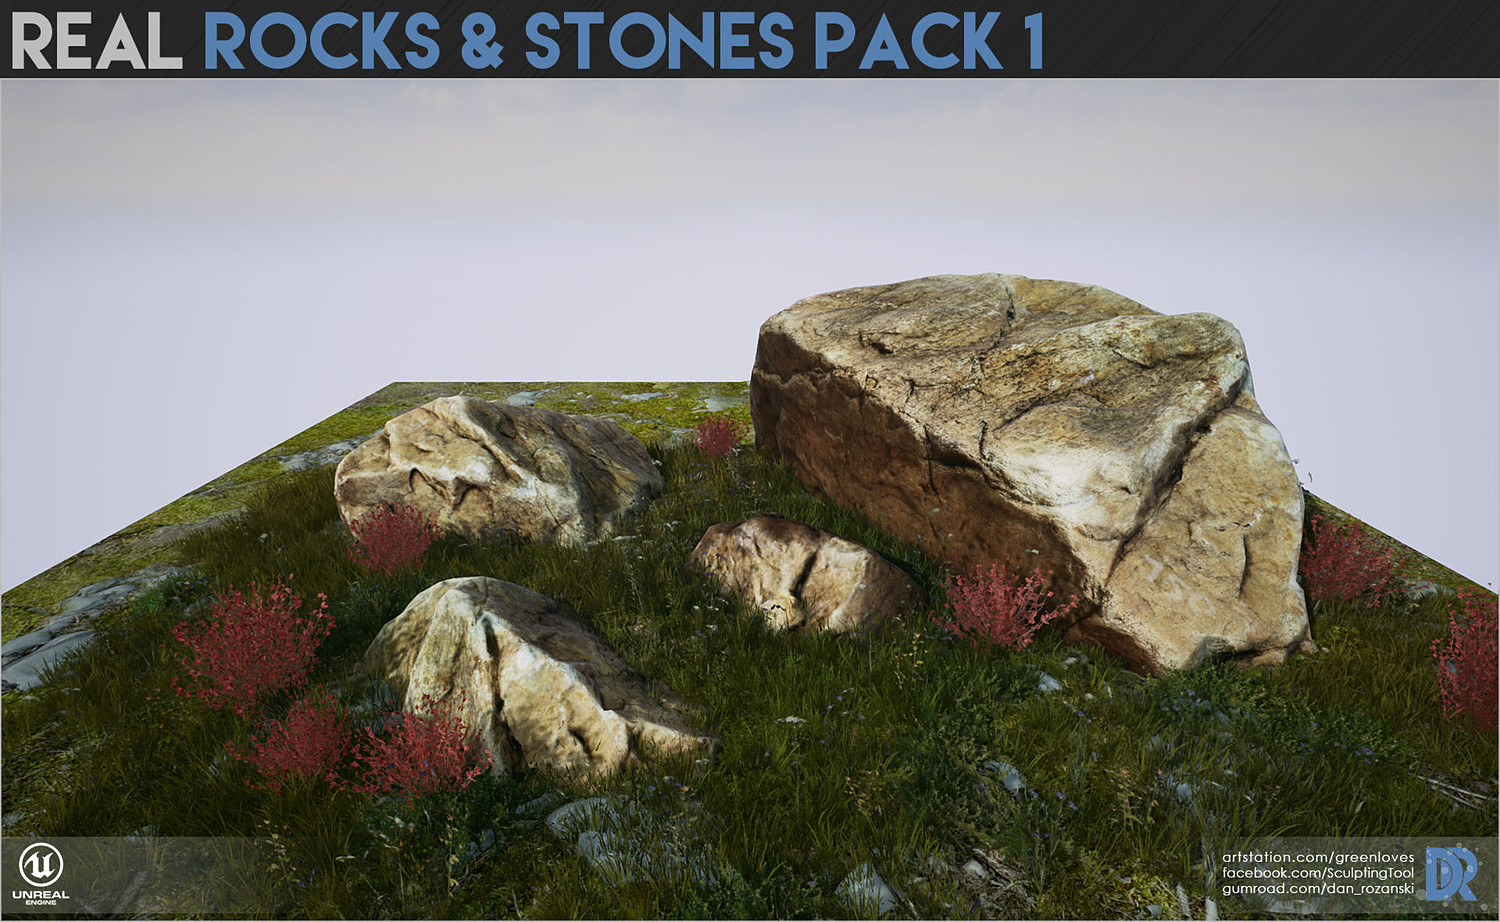 Real Rocks and Stones pack I